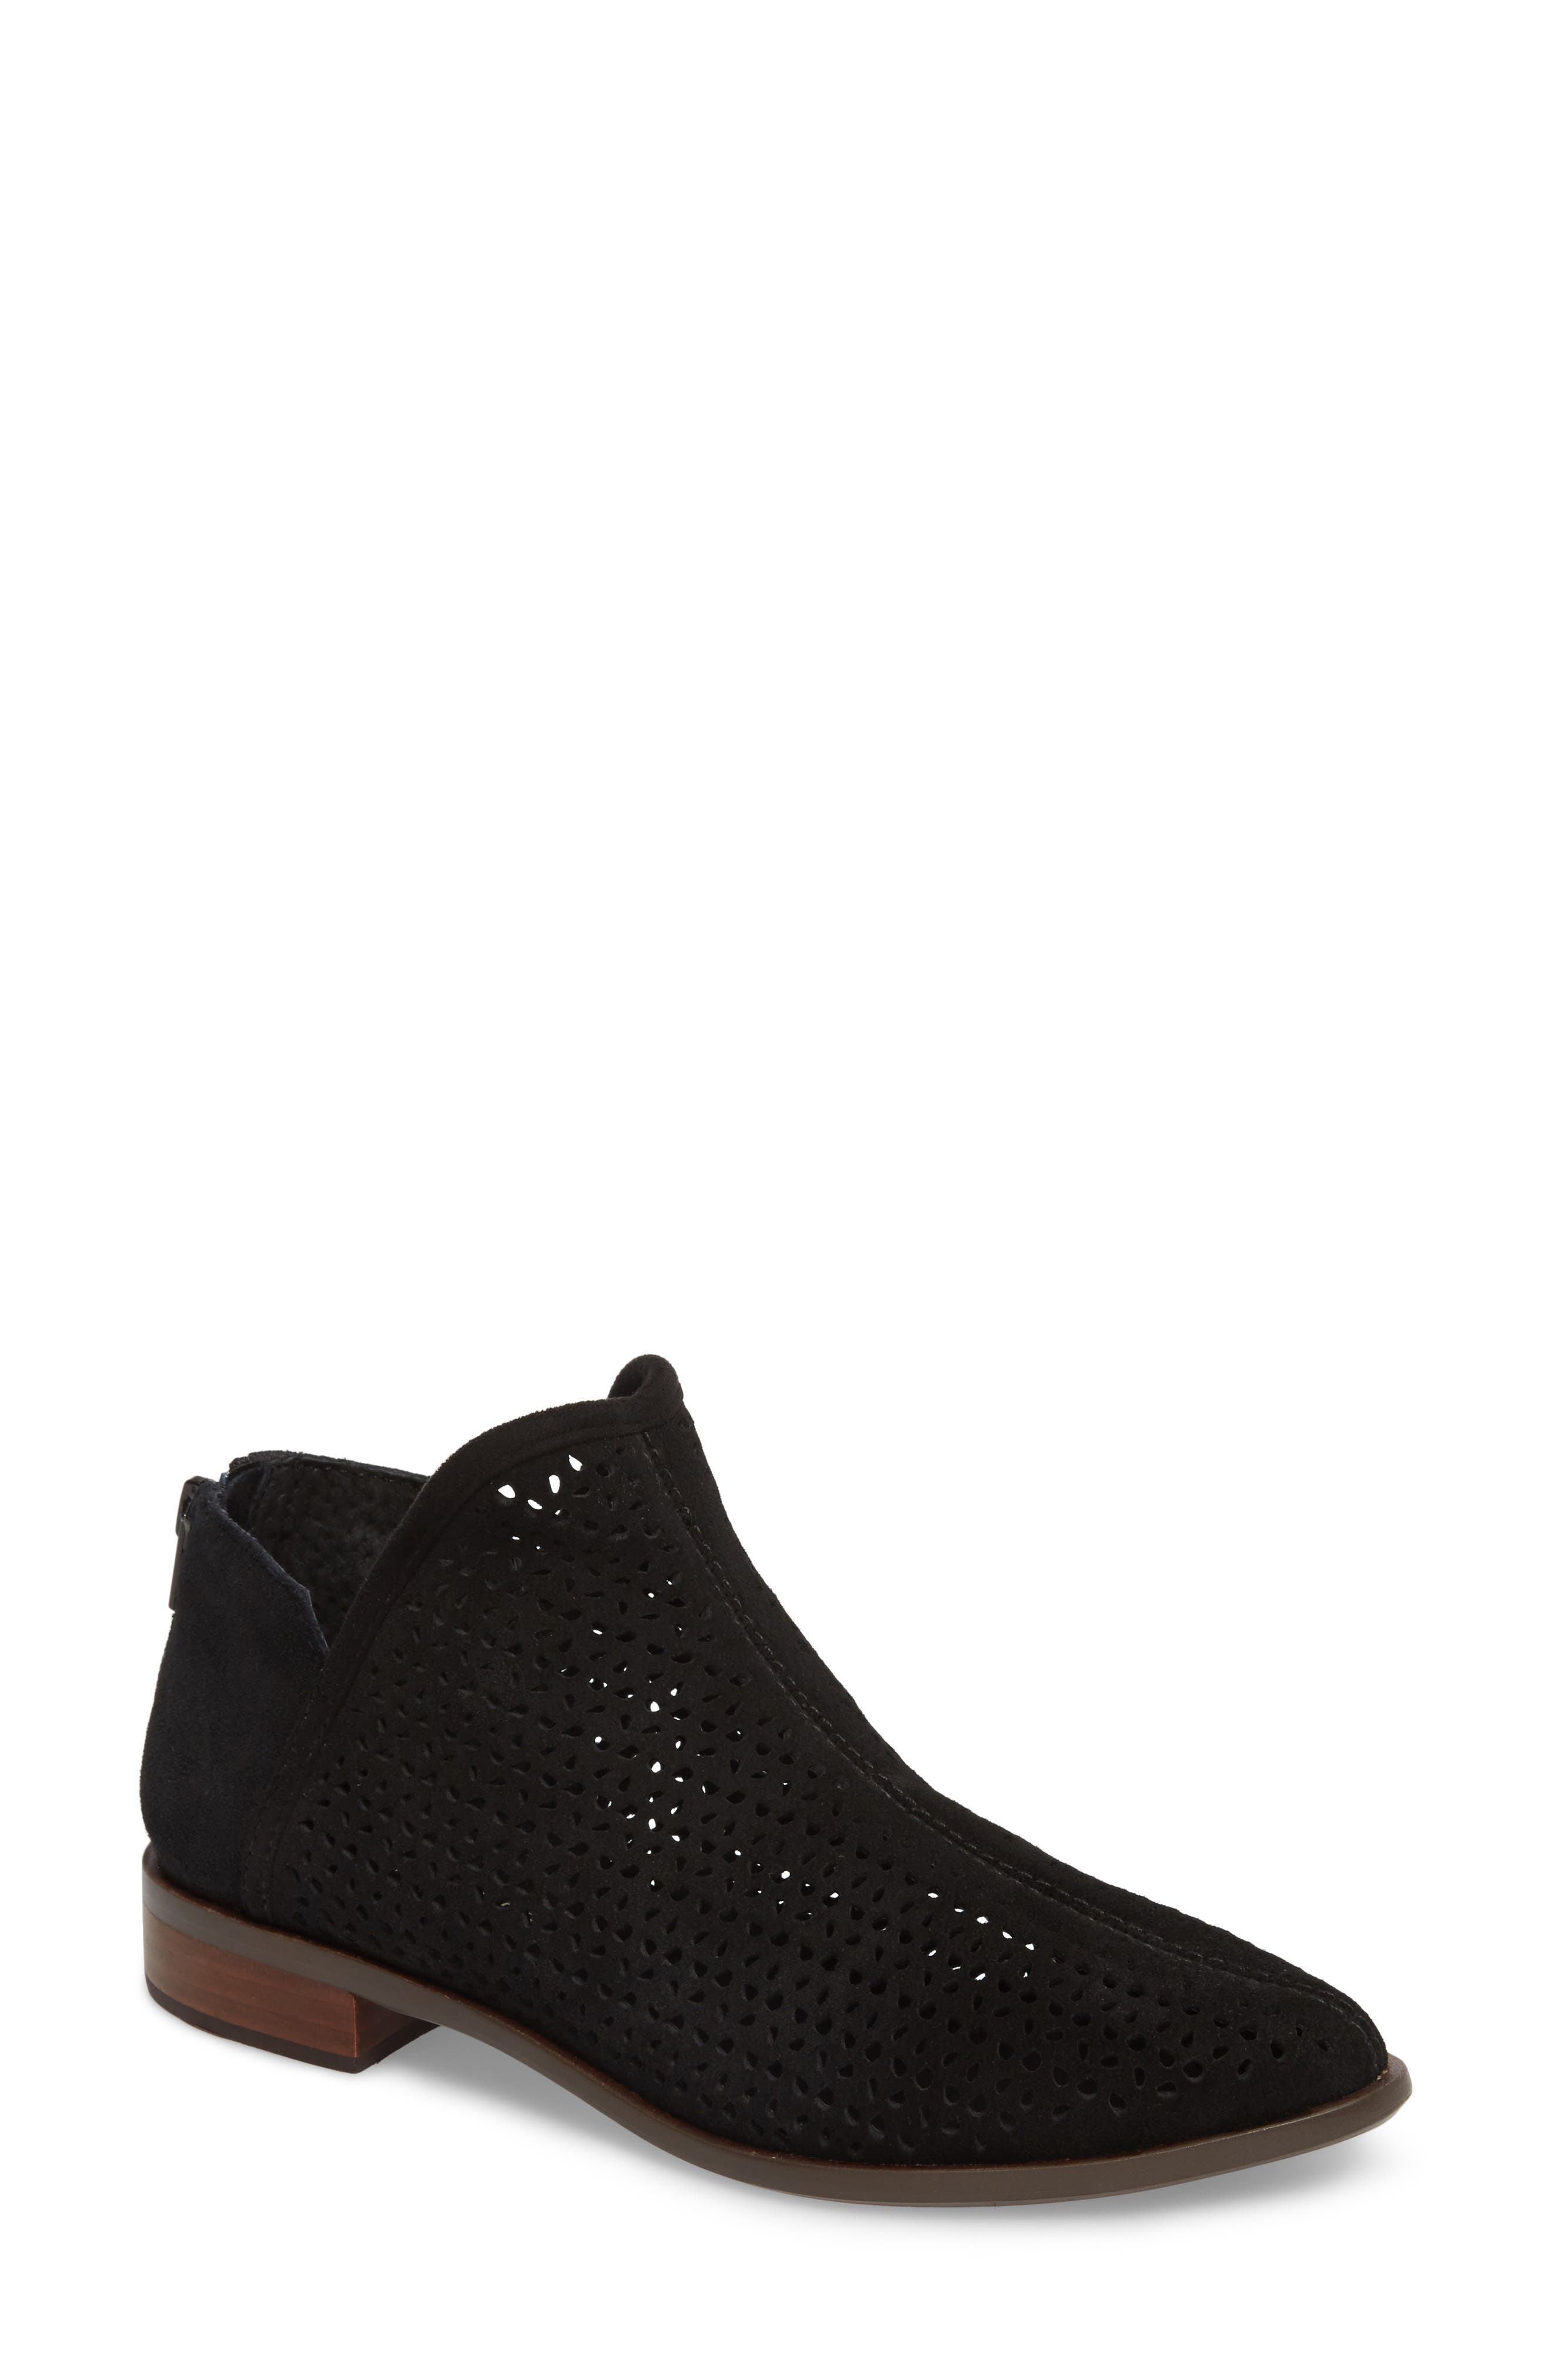 Alley Perforated Bootie,                             Main thumbnail 1, color,                             001